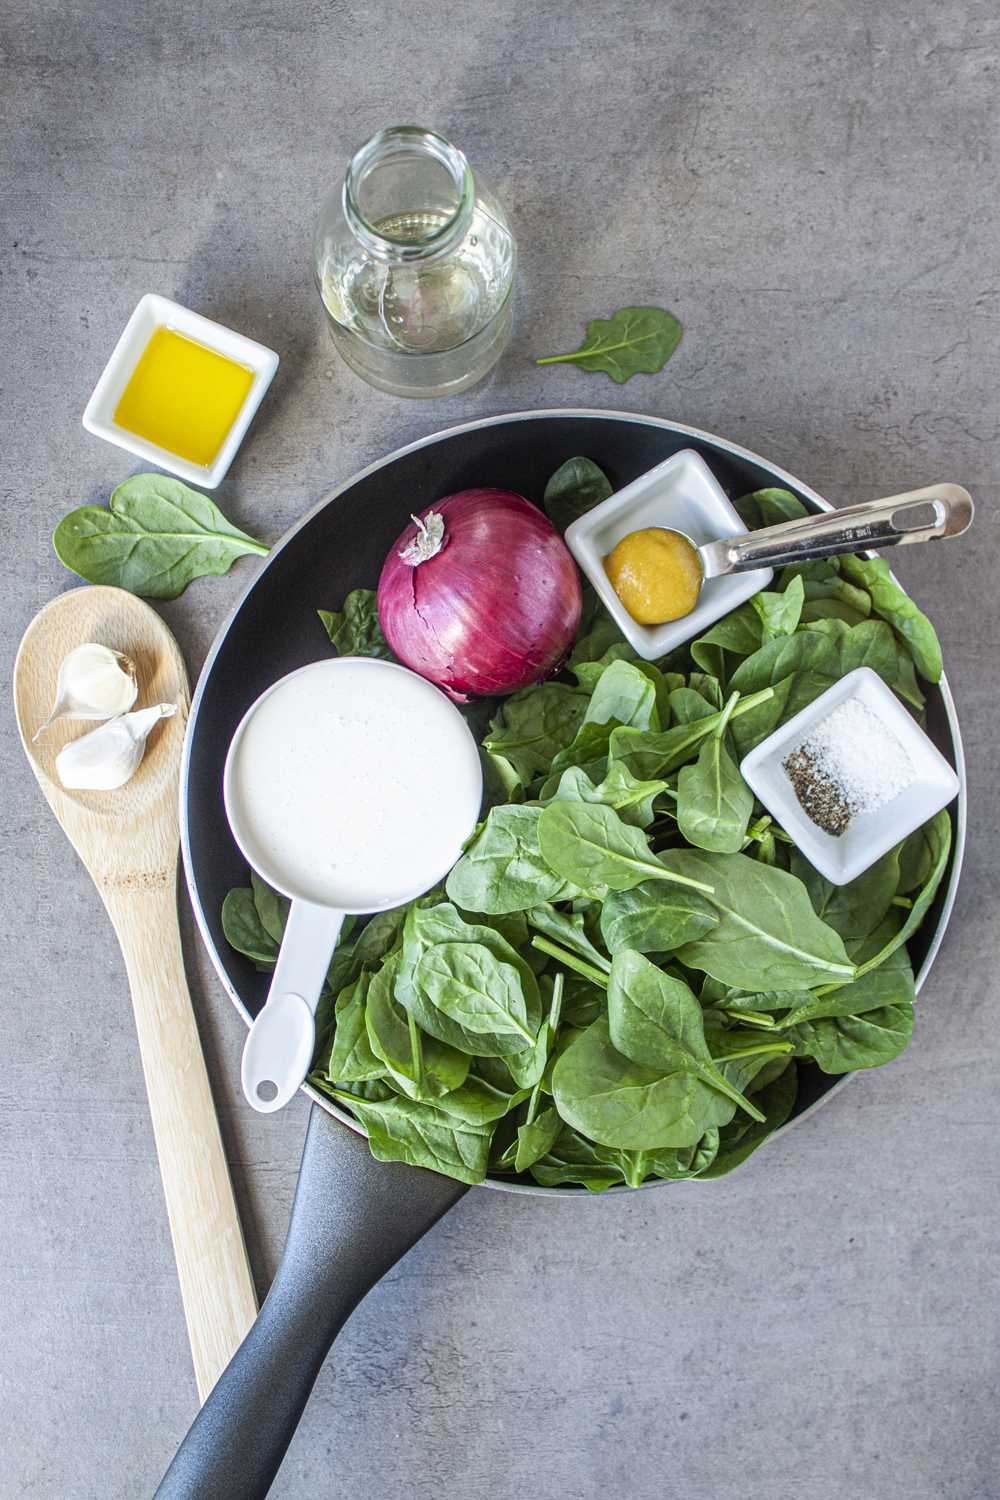 Heavy cream, spinach and other raw ingredients for spinach cream sauce.